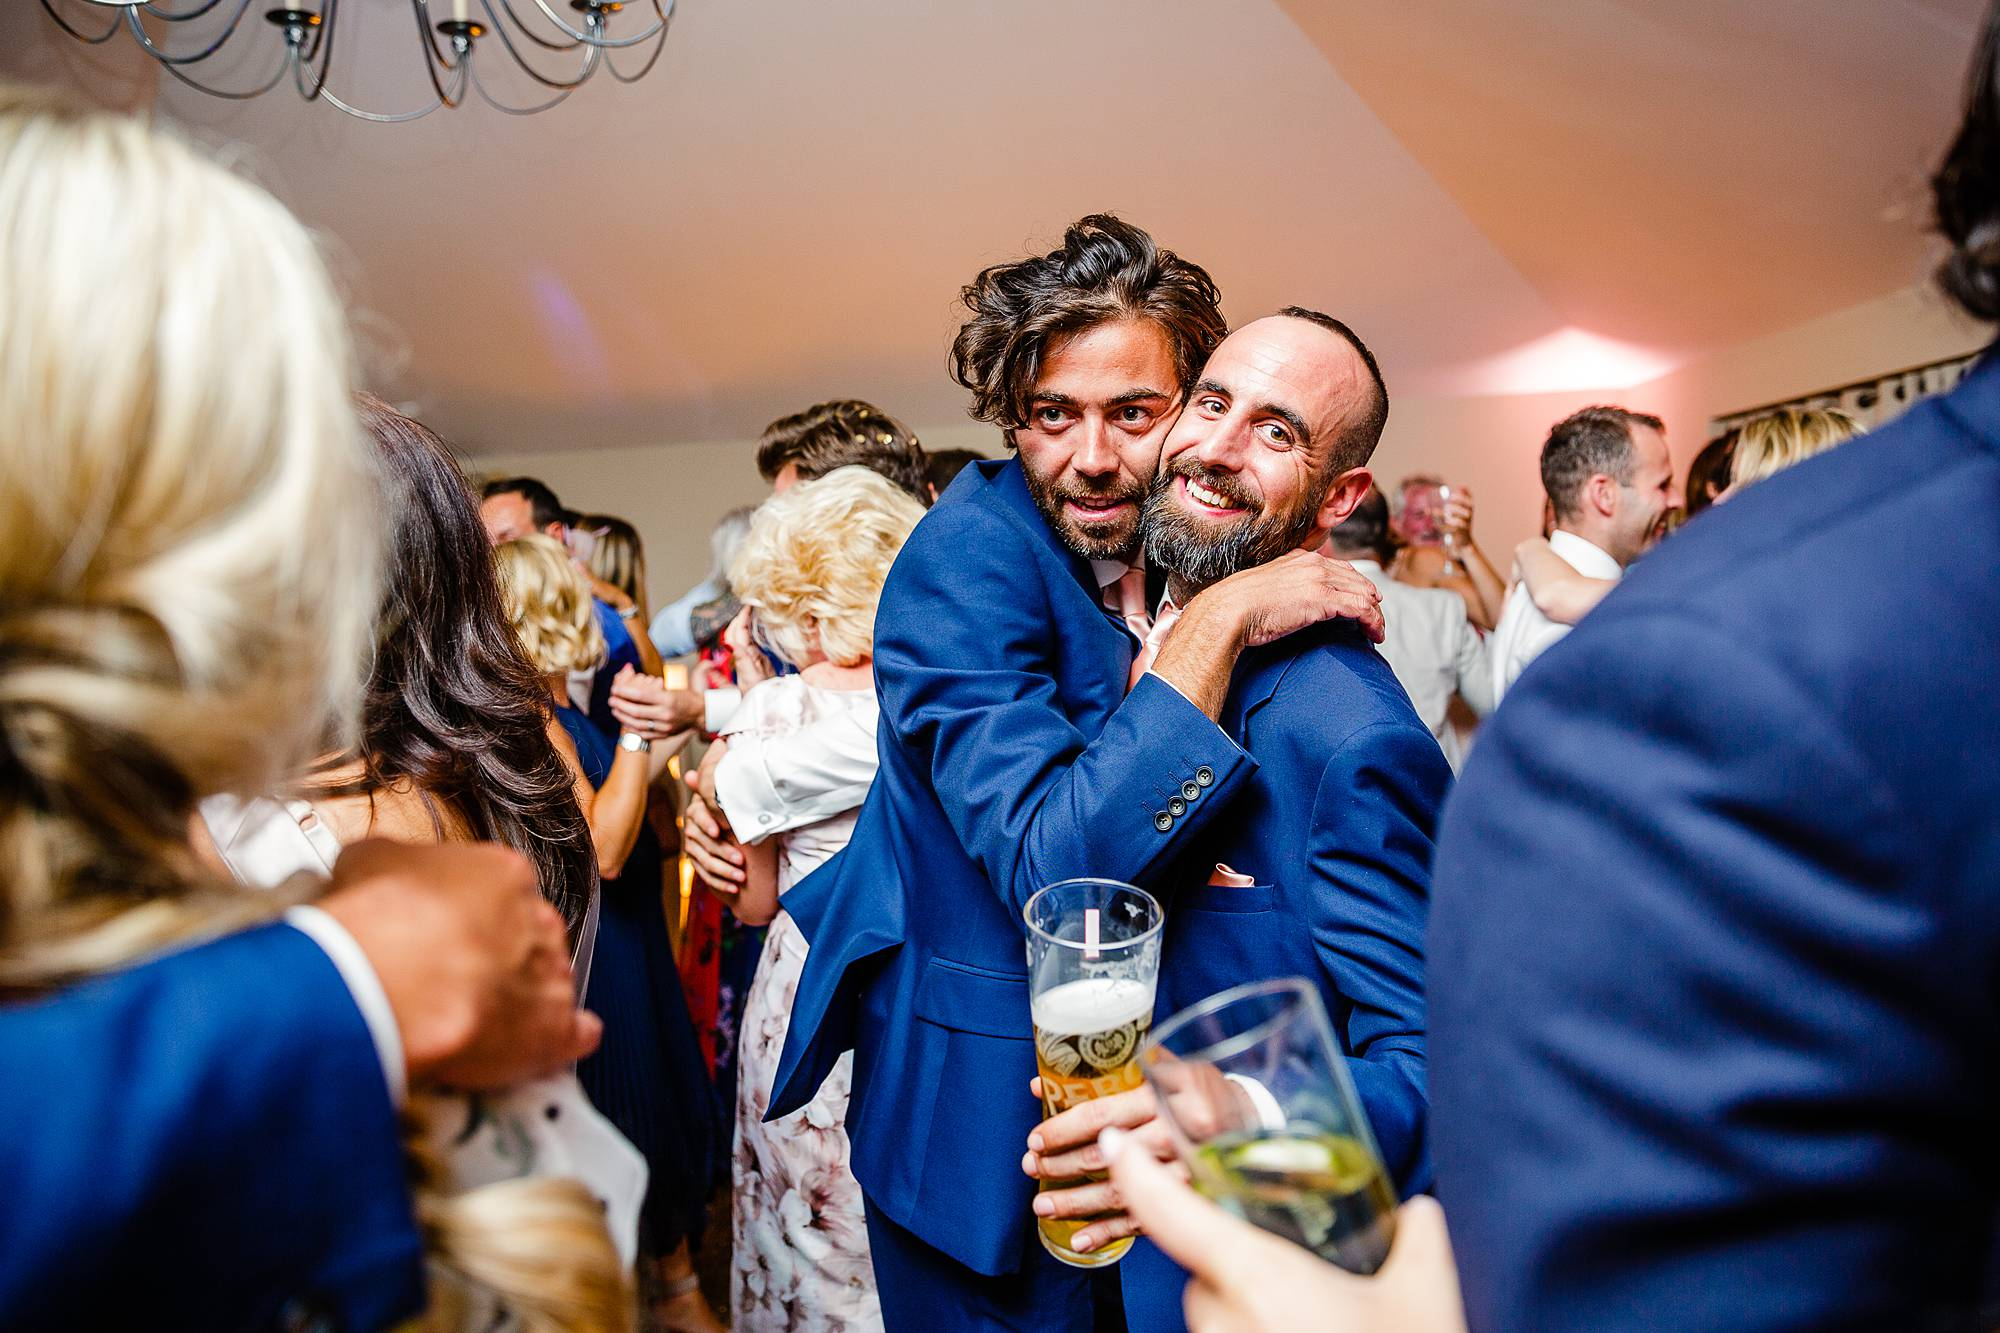 Houchins Essex Wedding Photographer_0114.jpg